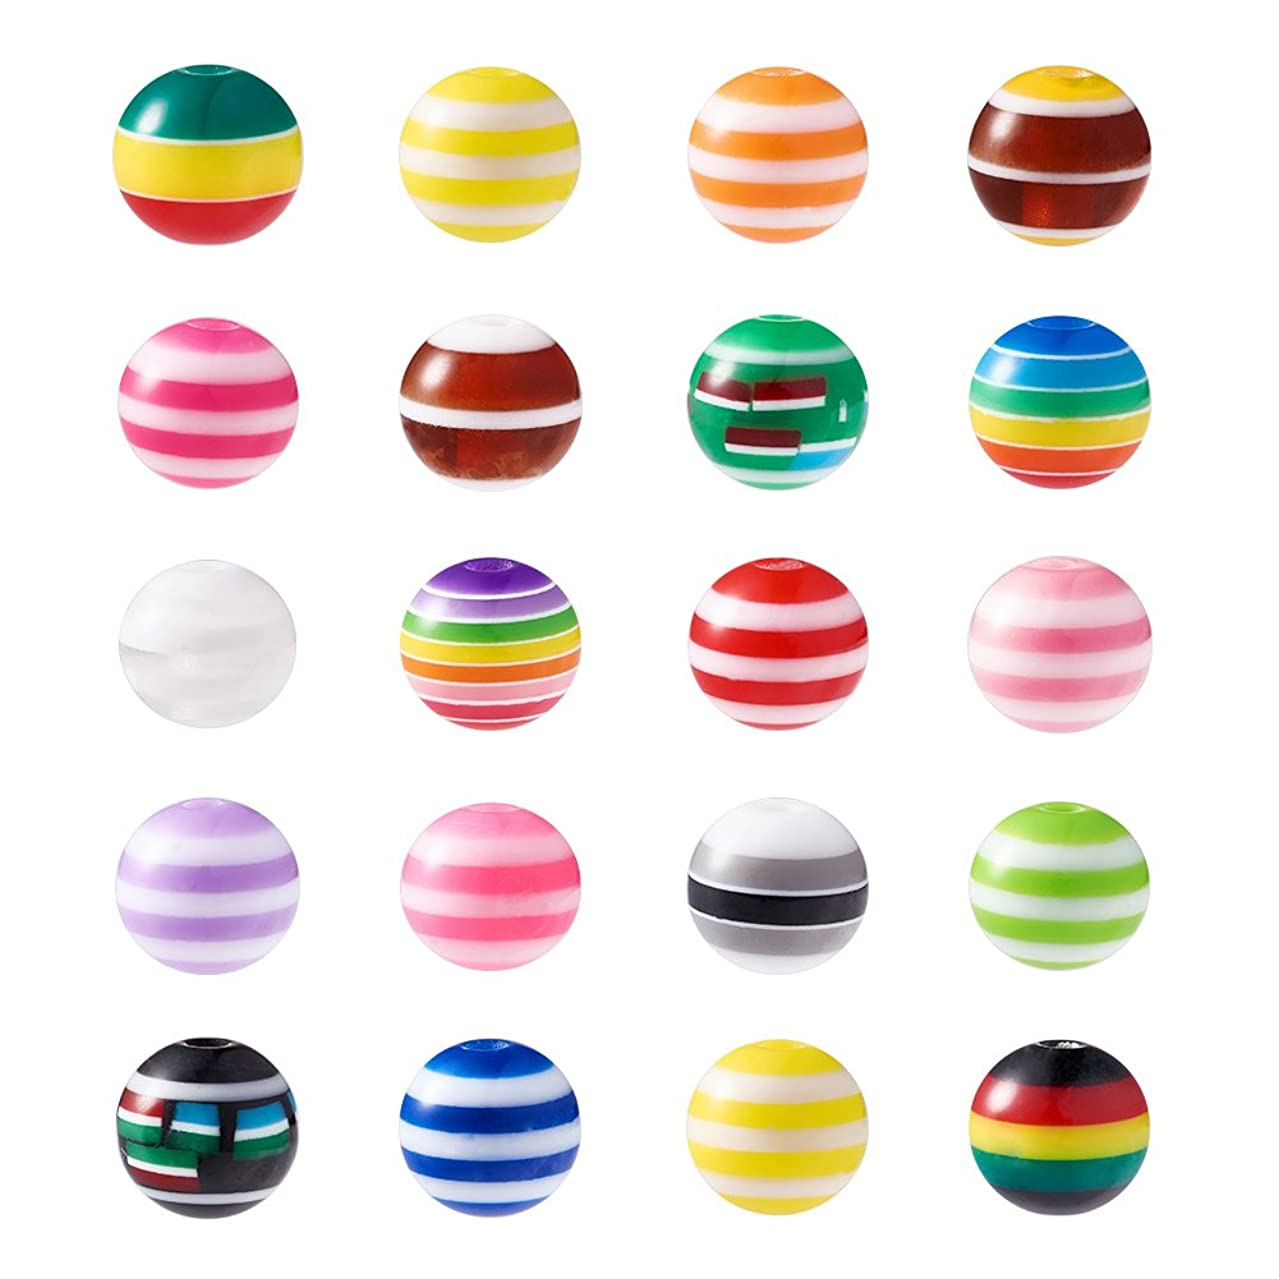 Craftdady 100Pcs Colorful 8mm Resin Stripe Line Round Ball Spacer Beads for DIY Jewelry Craft Making